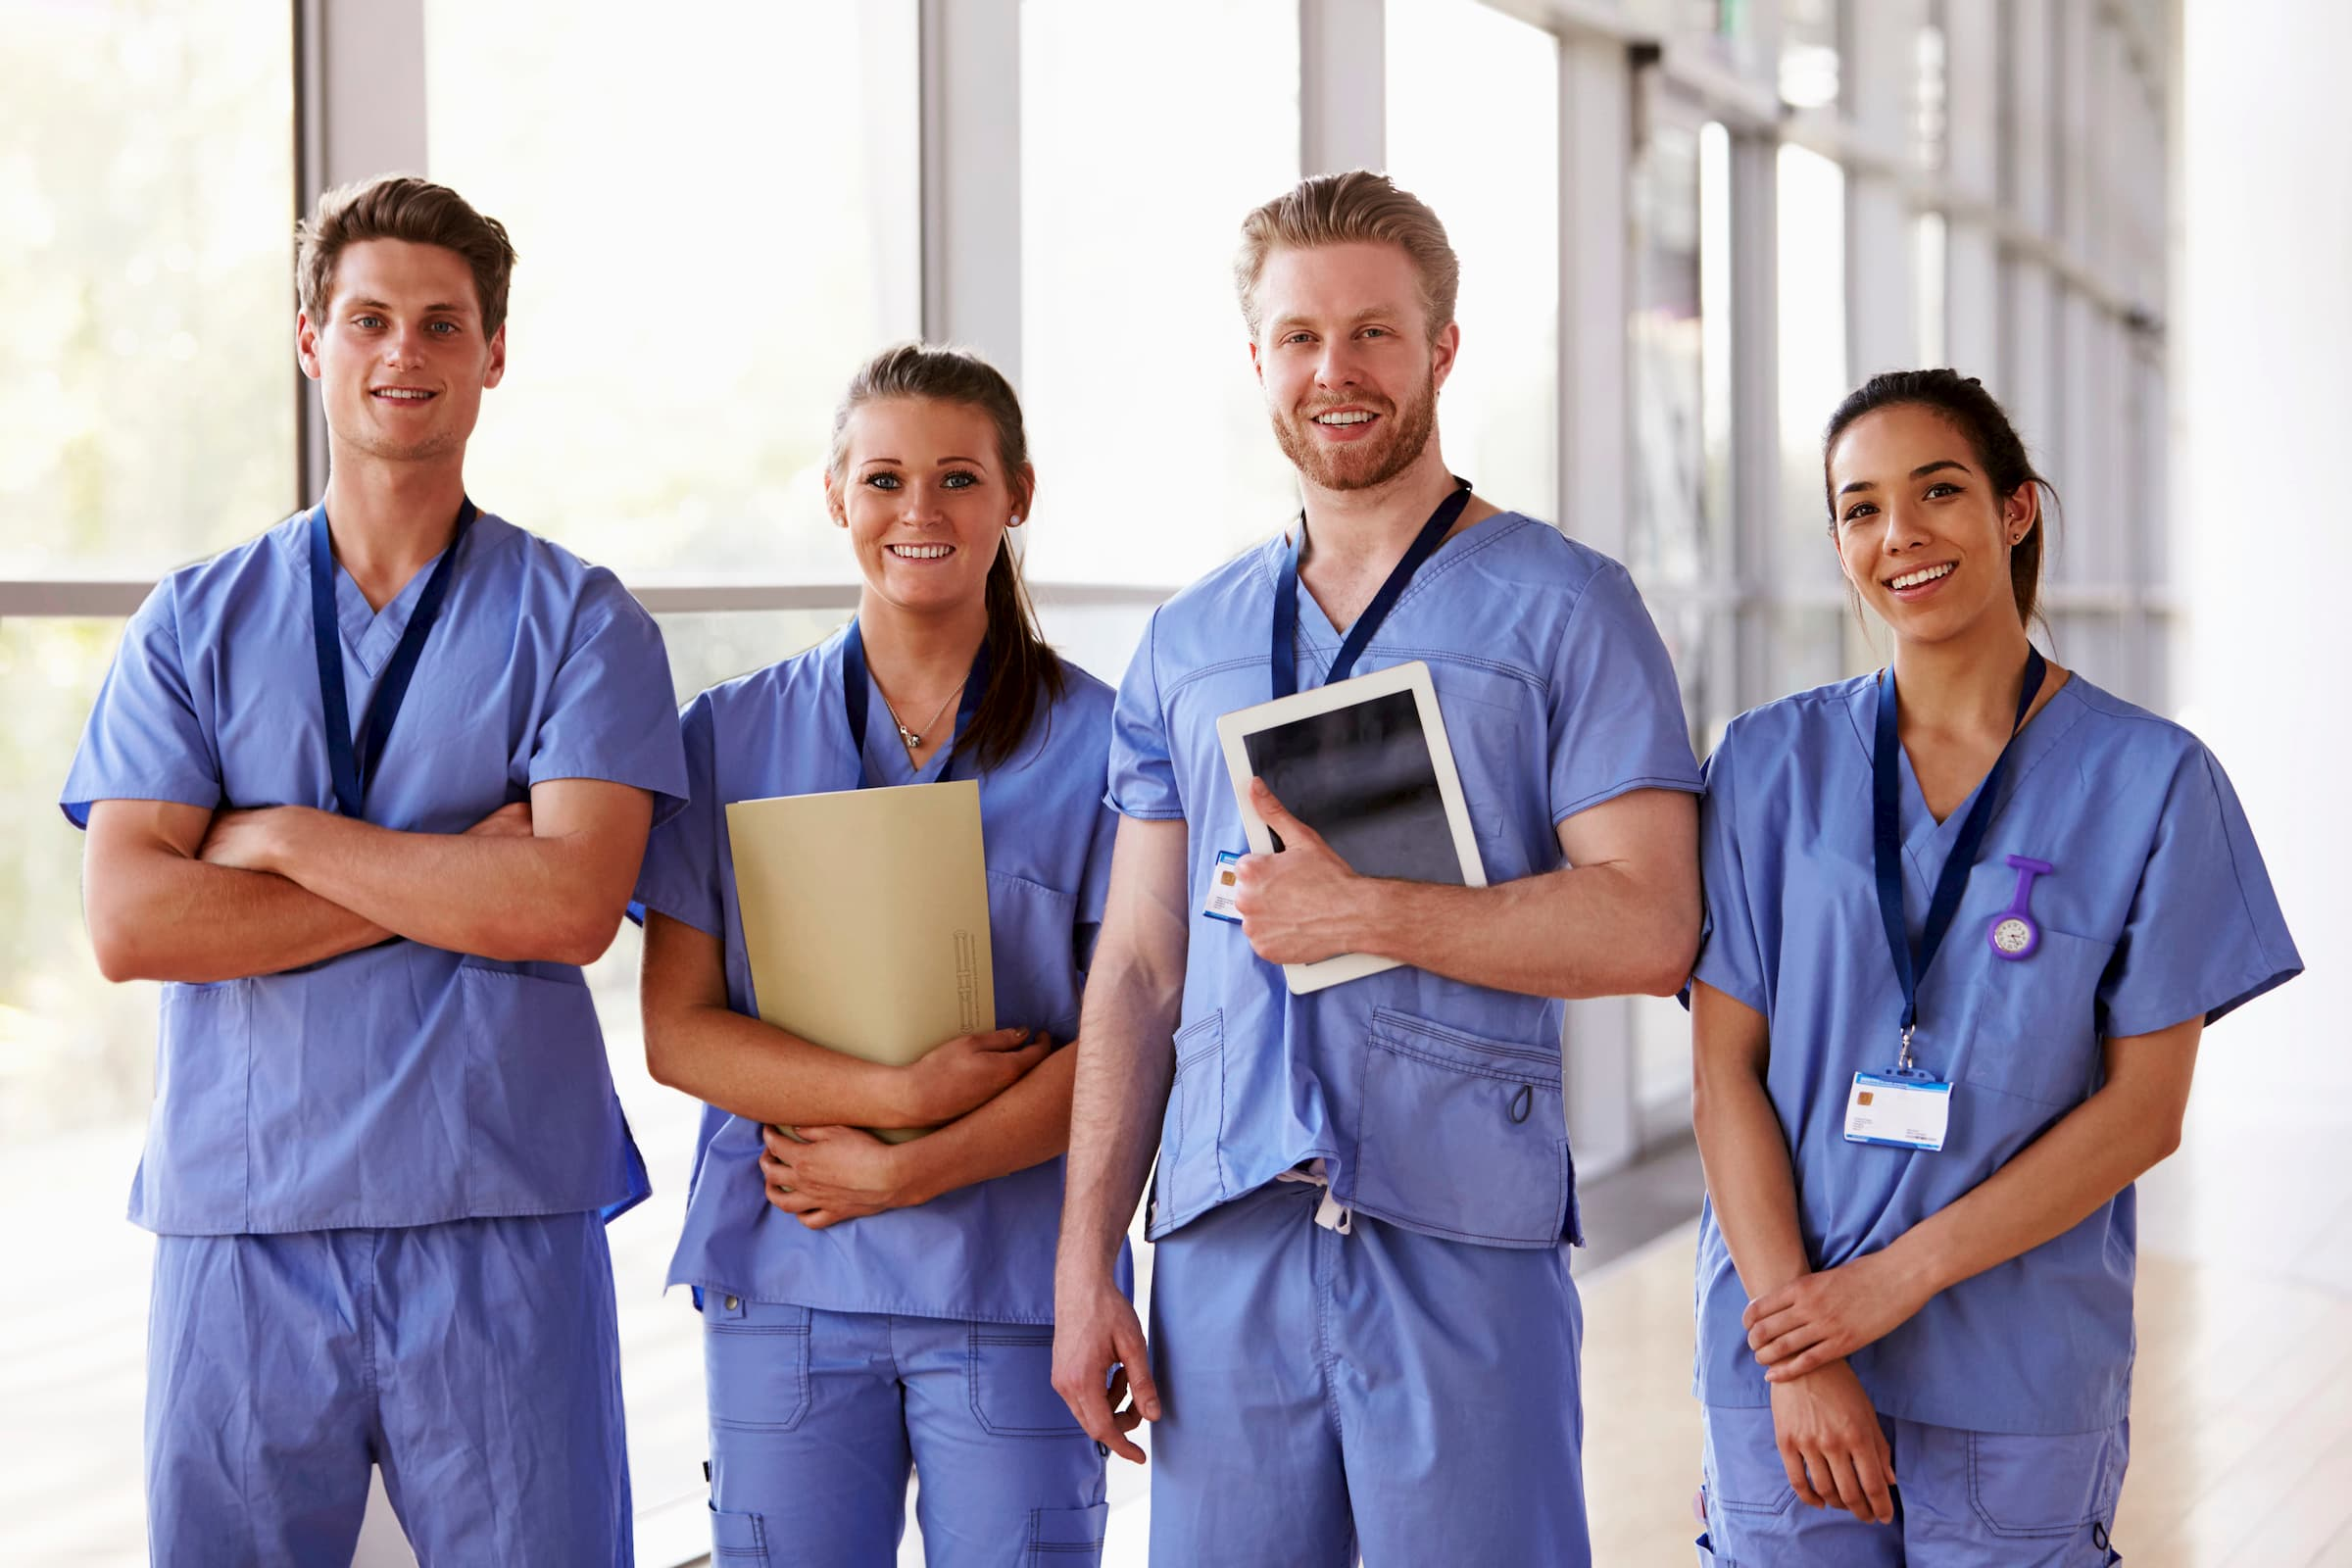 Group of young doctors or nurses in ciel blue scrubs, two men, two women, white and hispanic